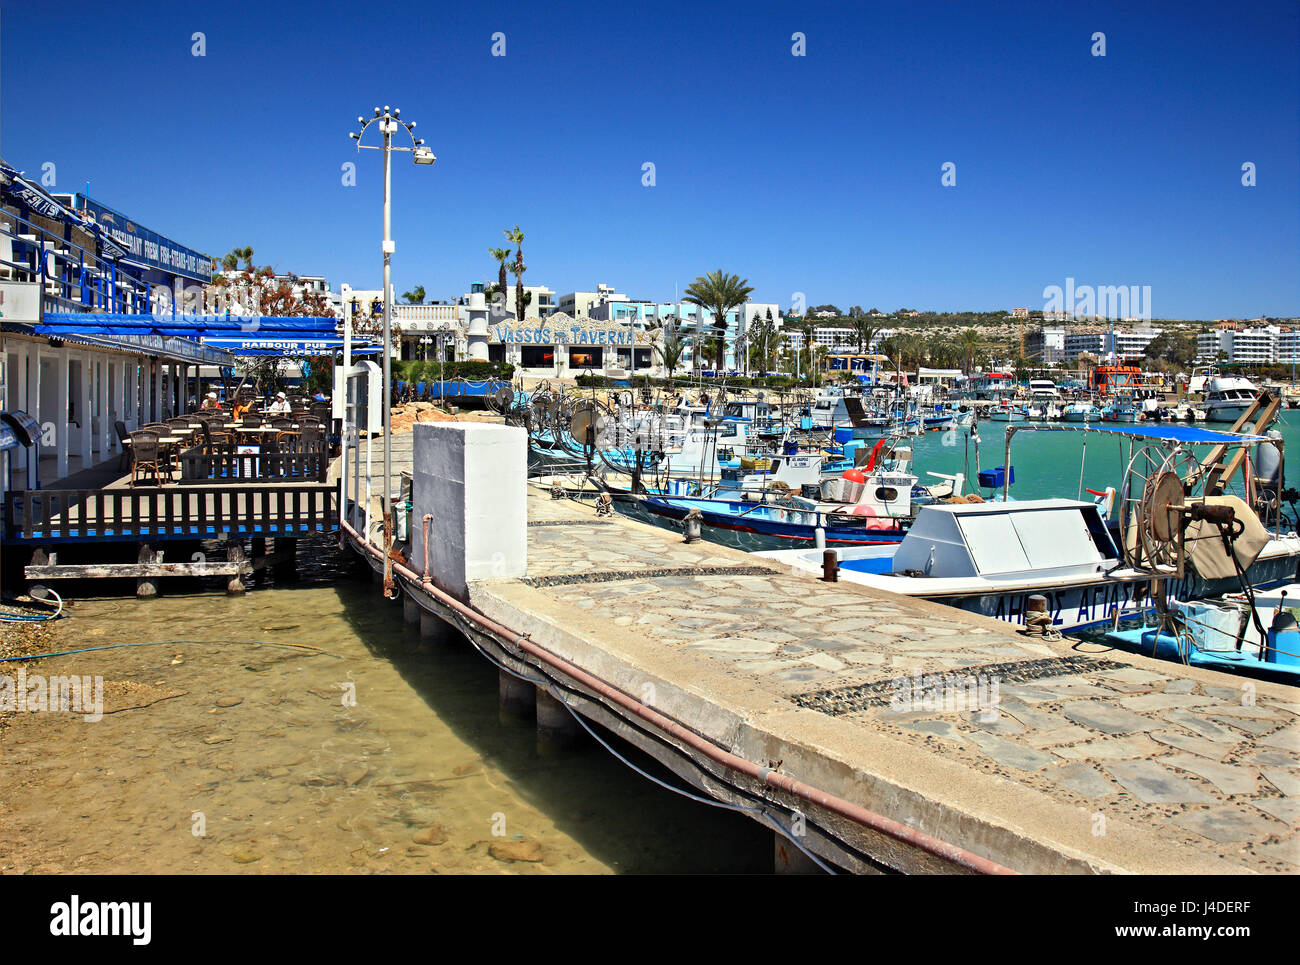 The fishing port of Ayia Napa, famous tourist resort in Cyprus island. - Stock Image